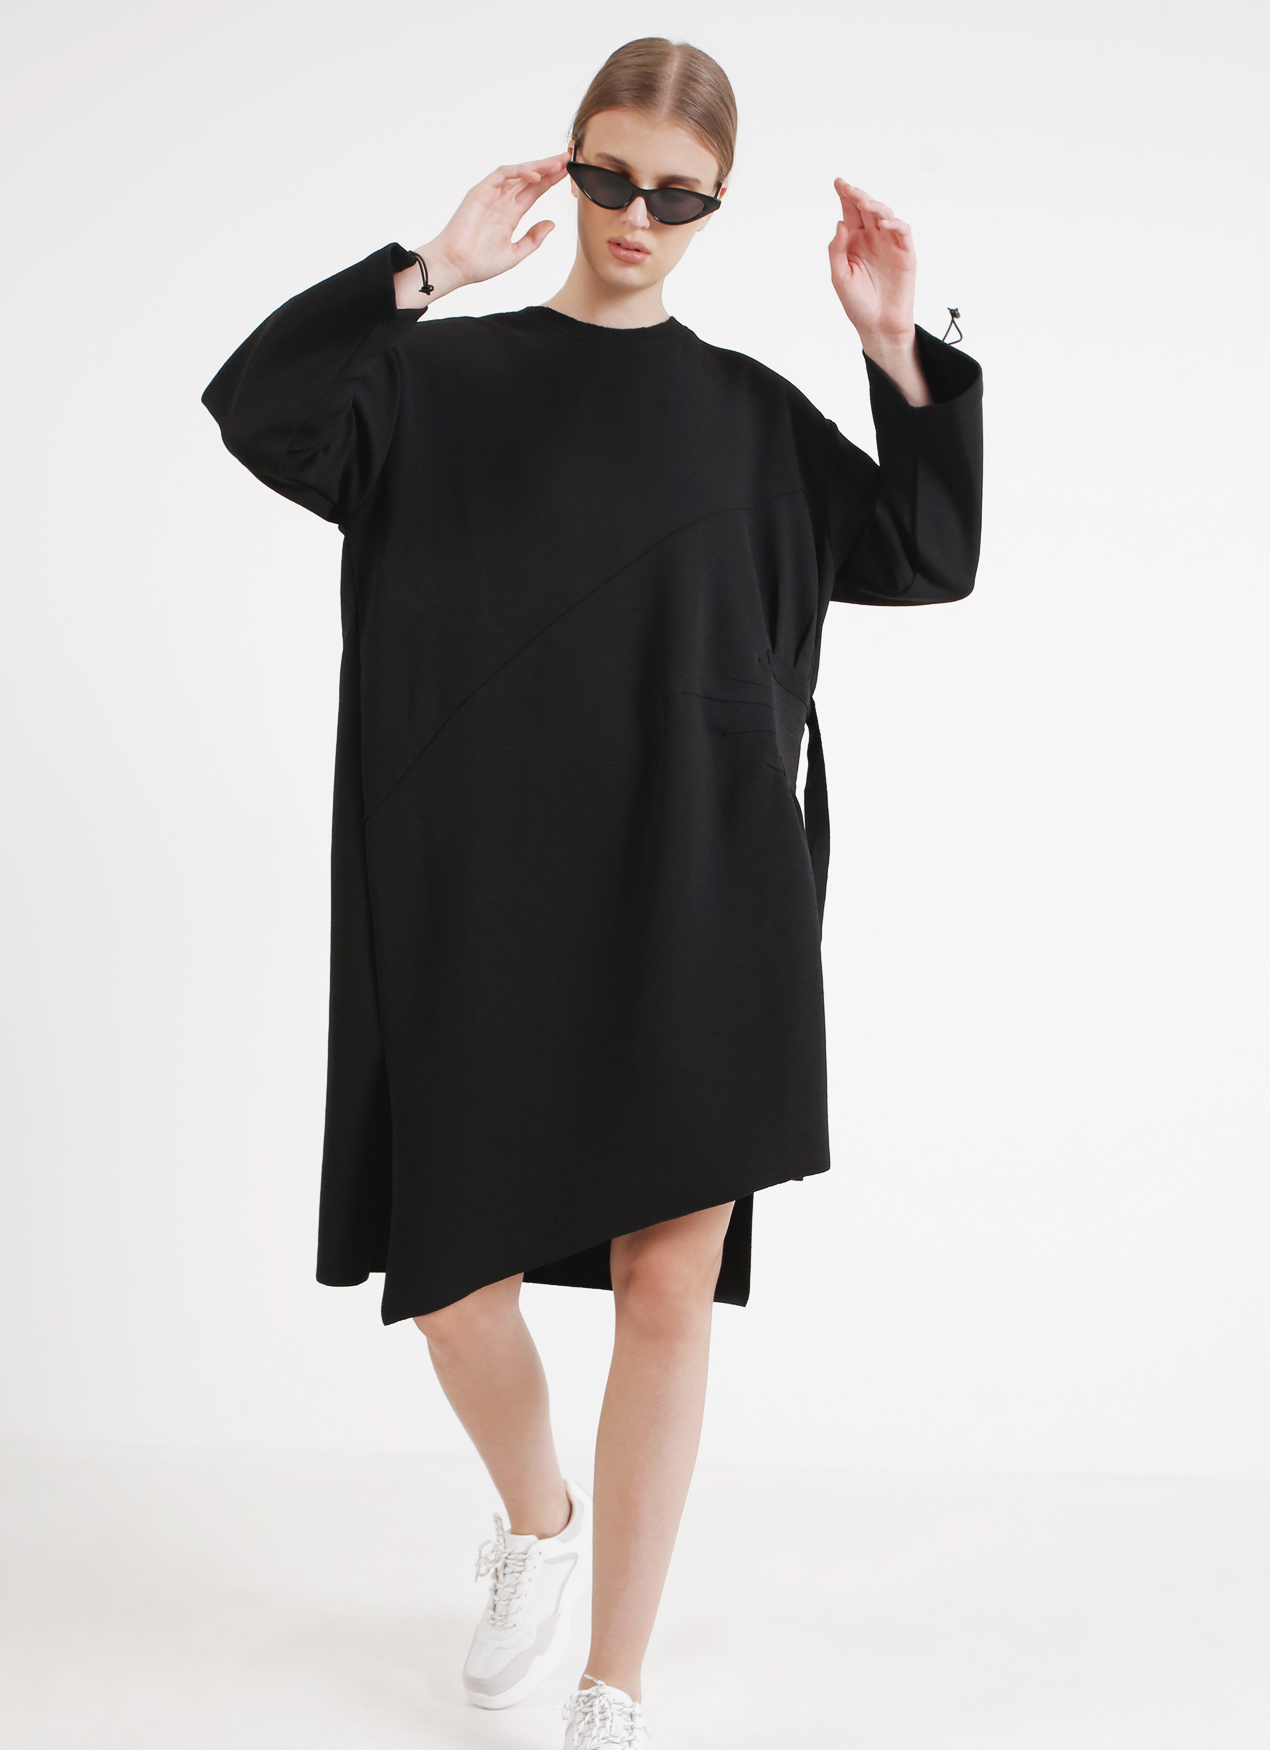 BOWN Lucy Dress - Black